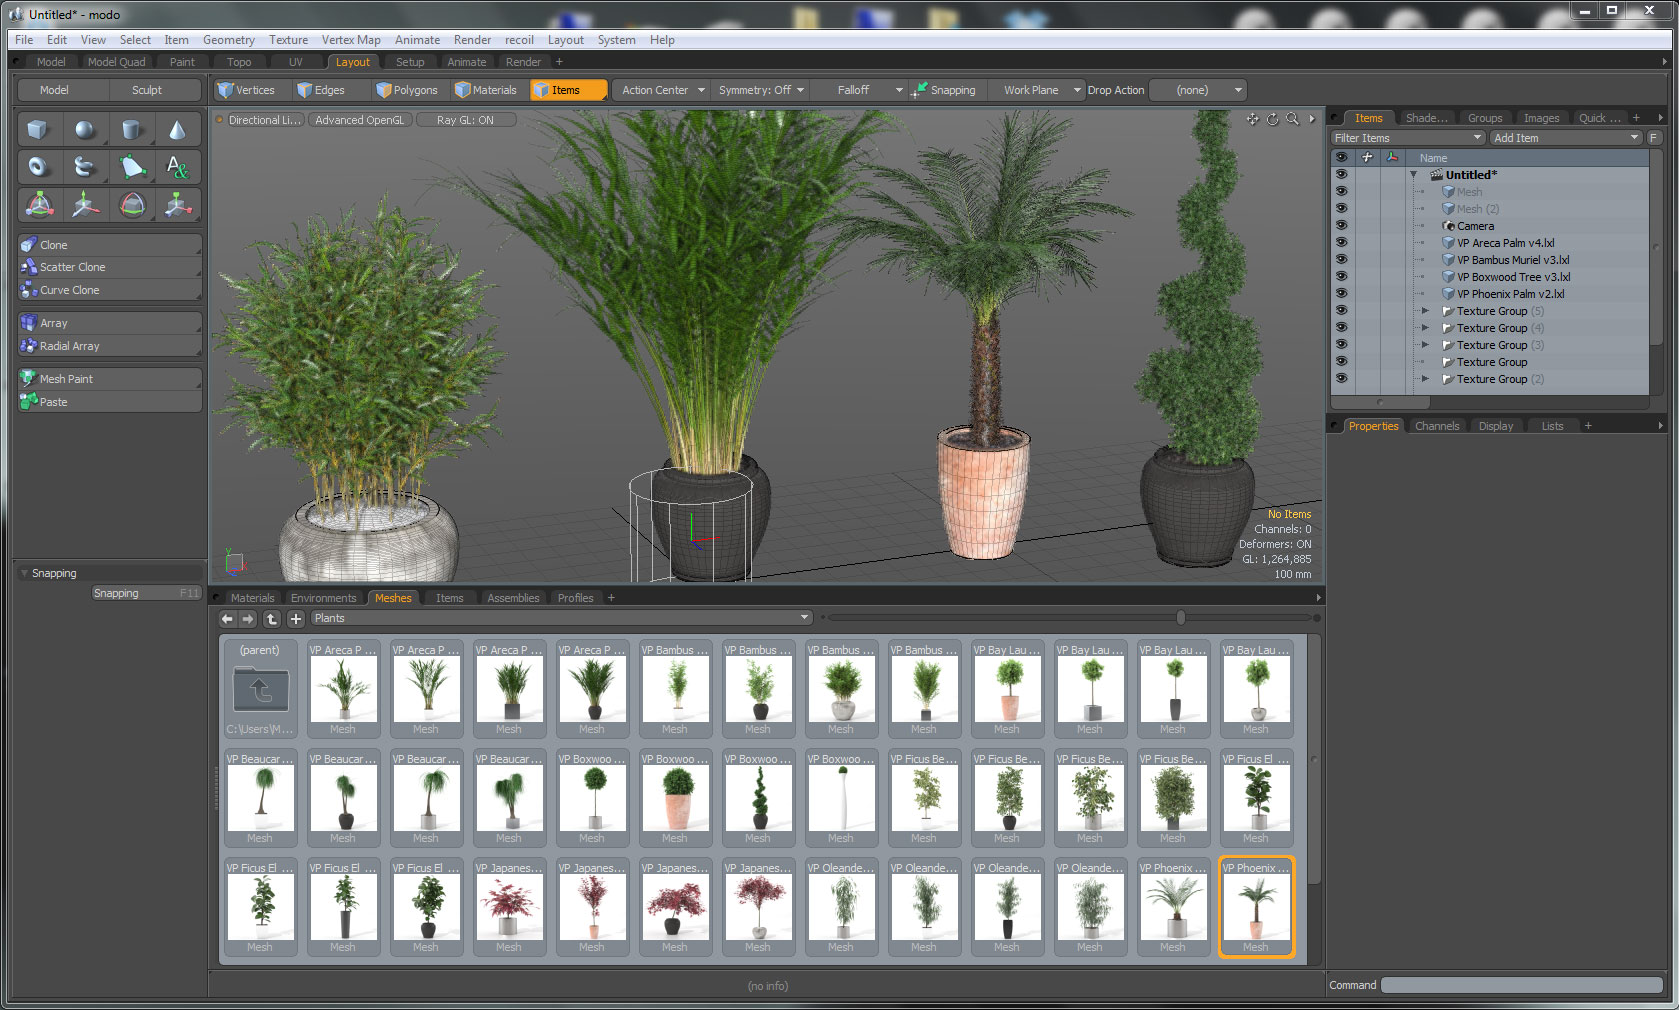 Interior Plants - MODO asset browser